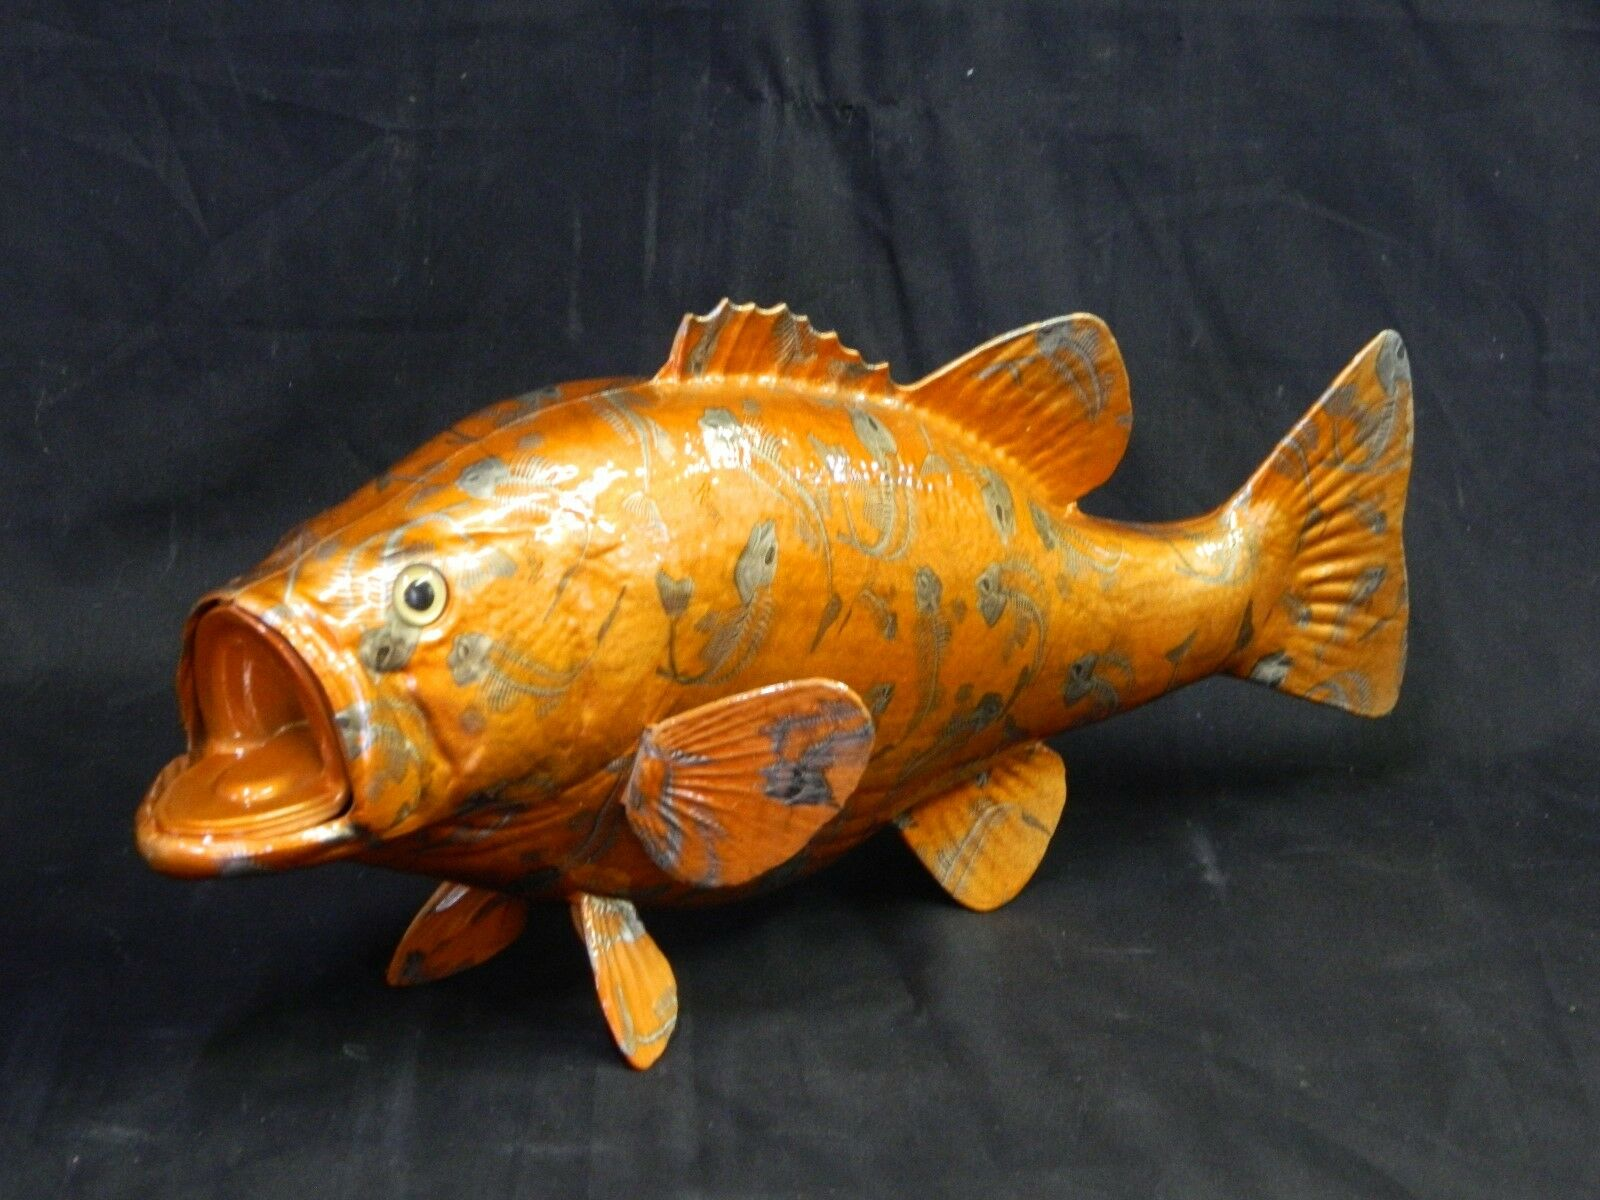 CLEARANCE 20  Bass Replica Hydrodipped orange Fish Bones  59.00 NICE GIFT